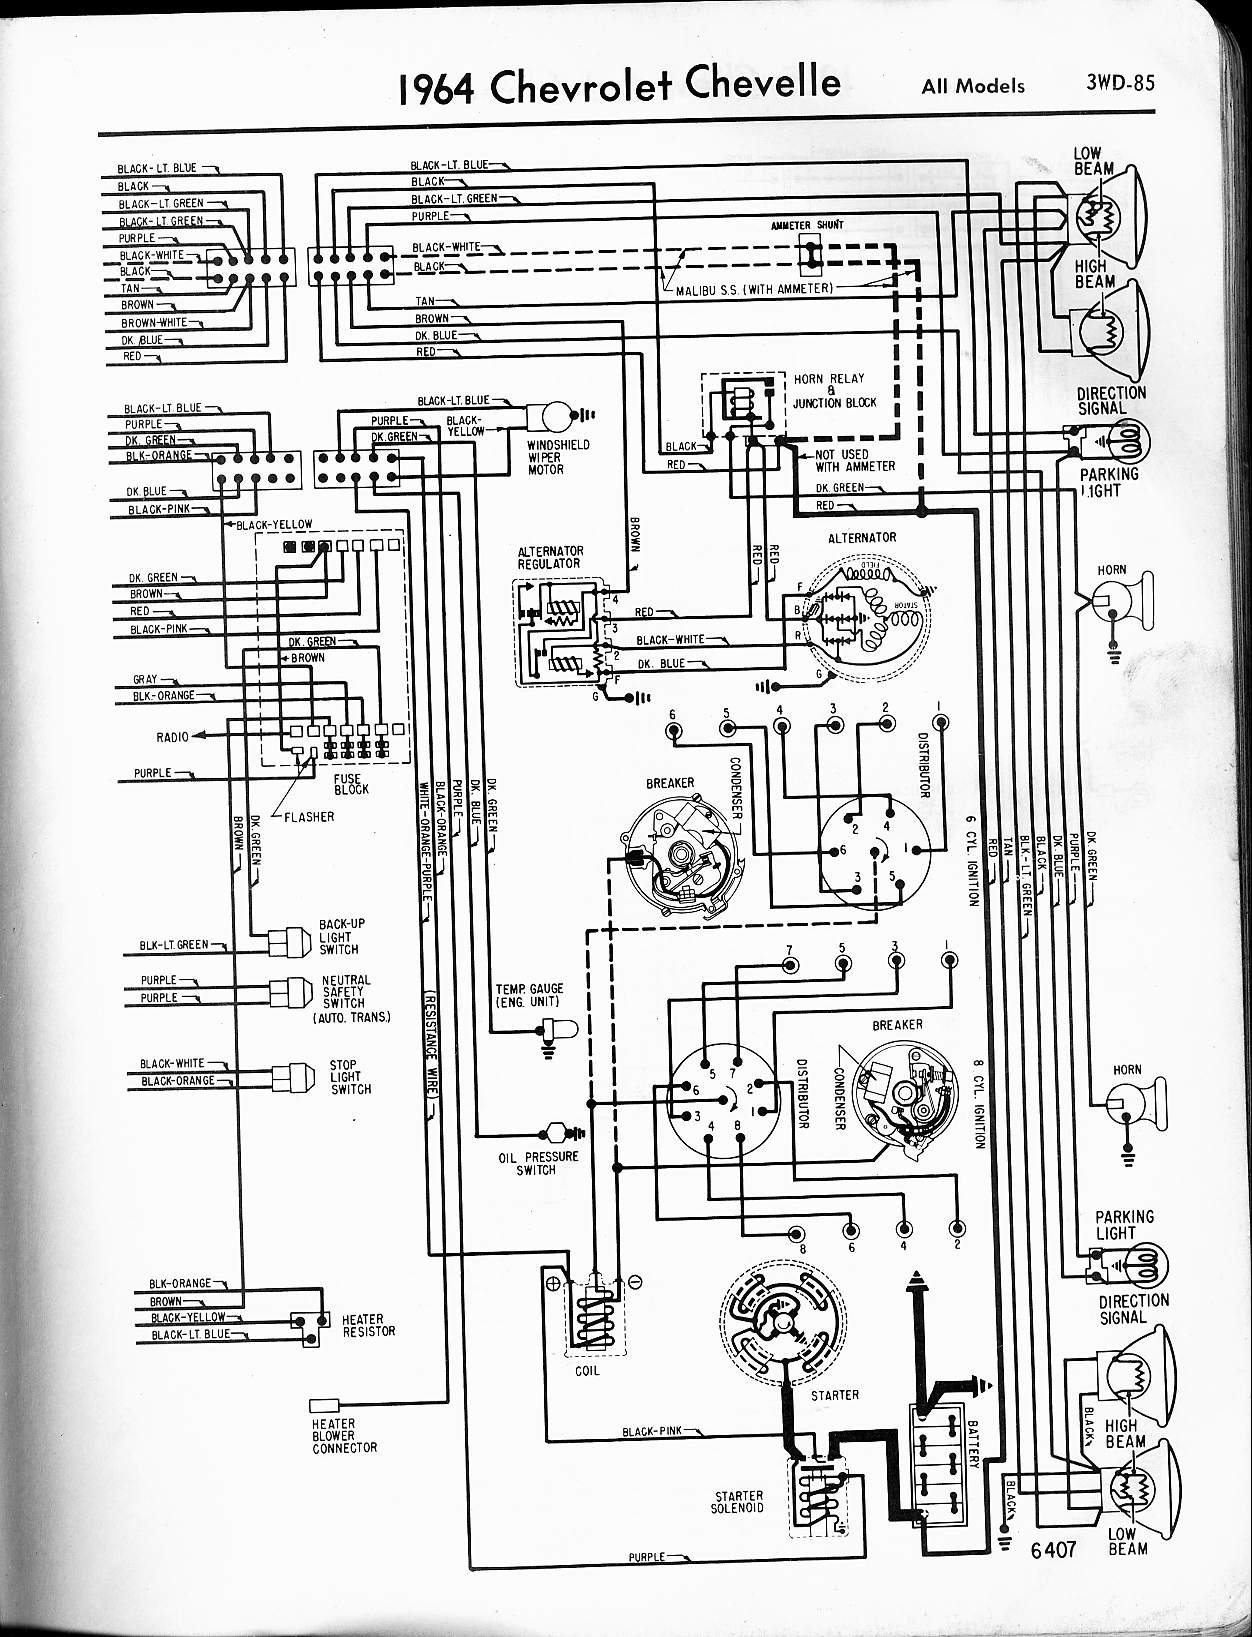 MWireChev64_3WD 085 chevy diagrams 1965 chevelle wiring harness at reclaimingppi.co